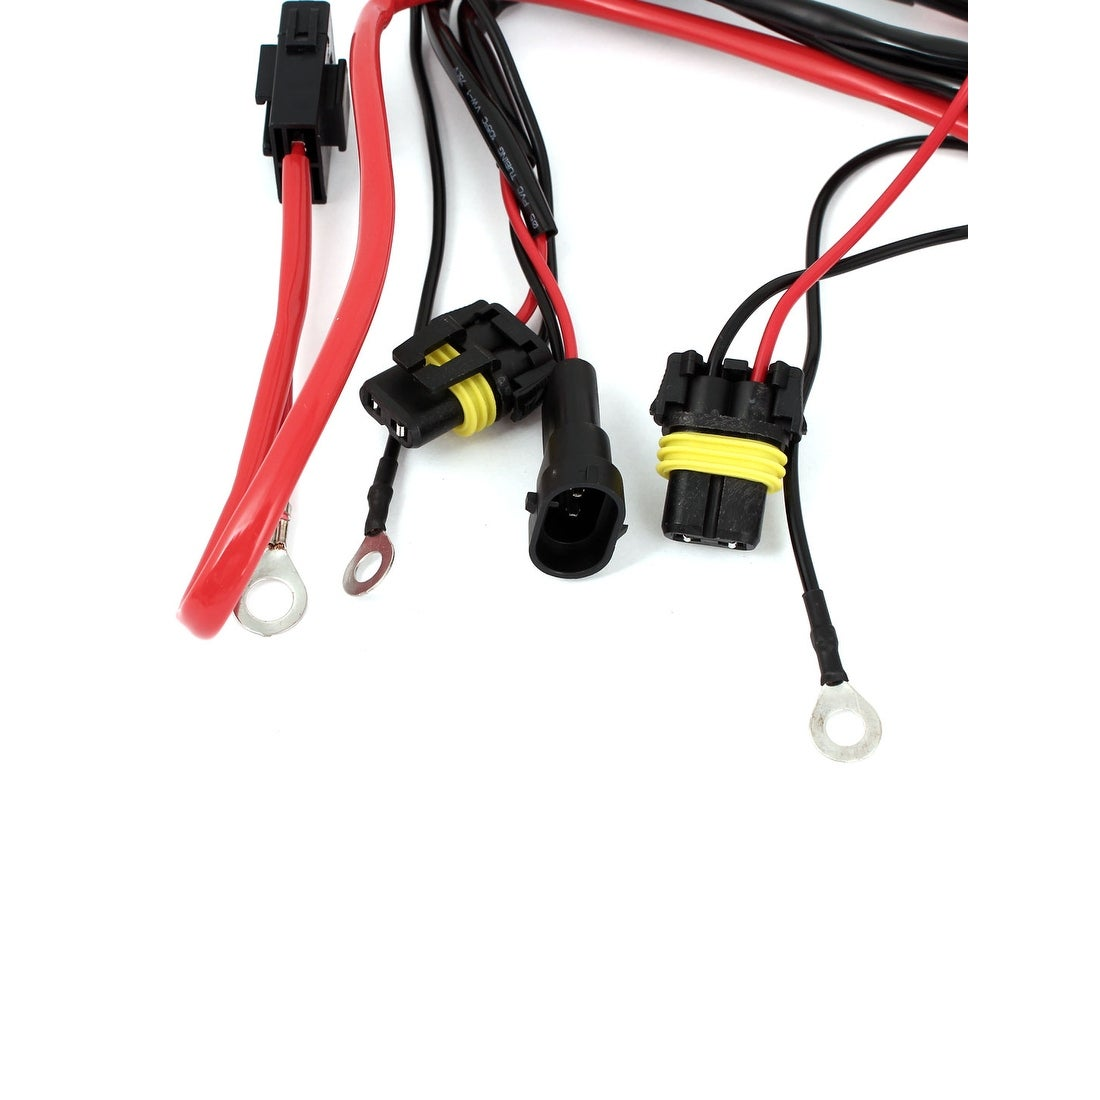 Xenon Hid Conversion Kit Relay Wiring Harness Wire Upgrade H8 H11 Tool 12v 40a Free Shipping On Orders Over 45 24239359